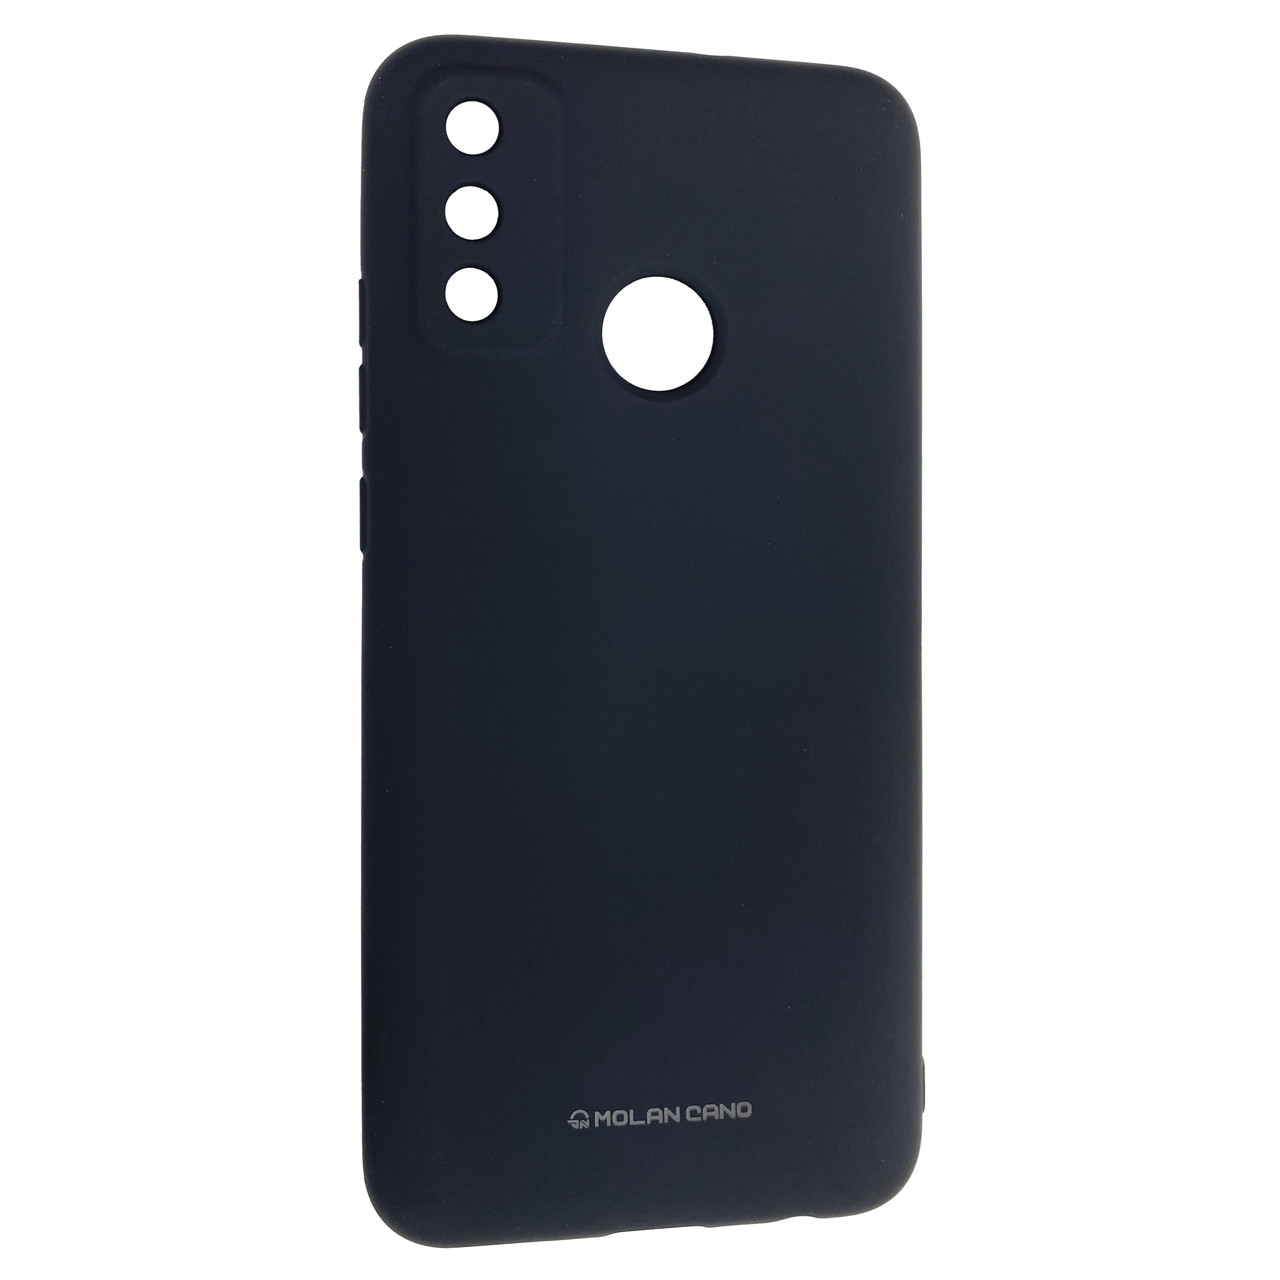 Чехол-накладка Silicone Hana Molan Cano для Huawei P Smart (2020) (black)